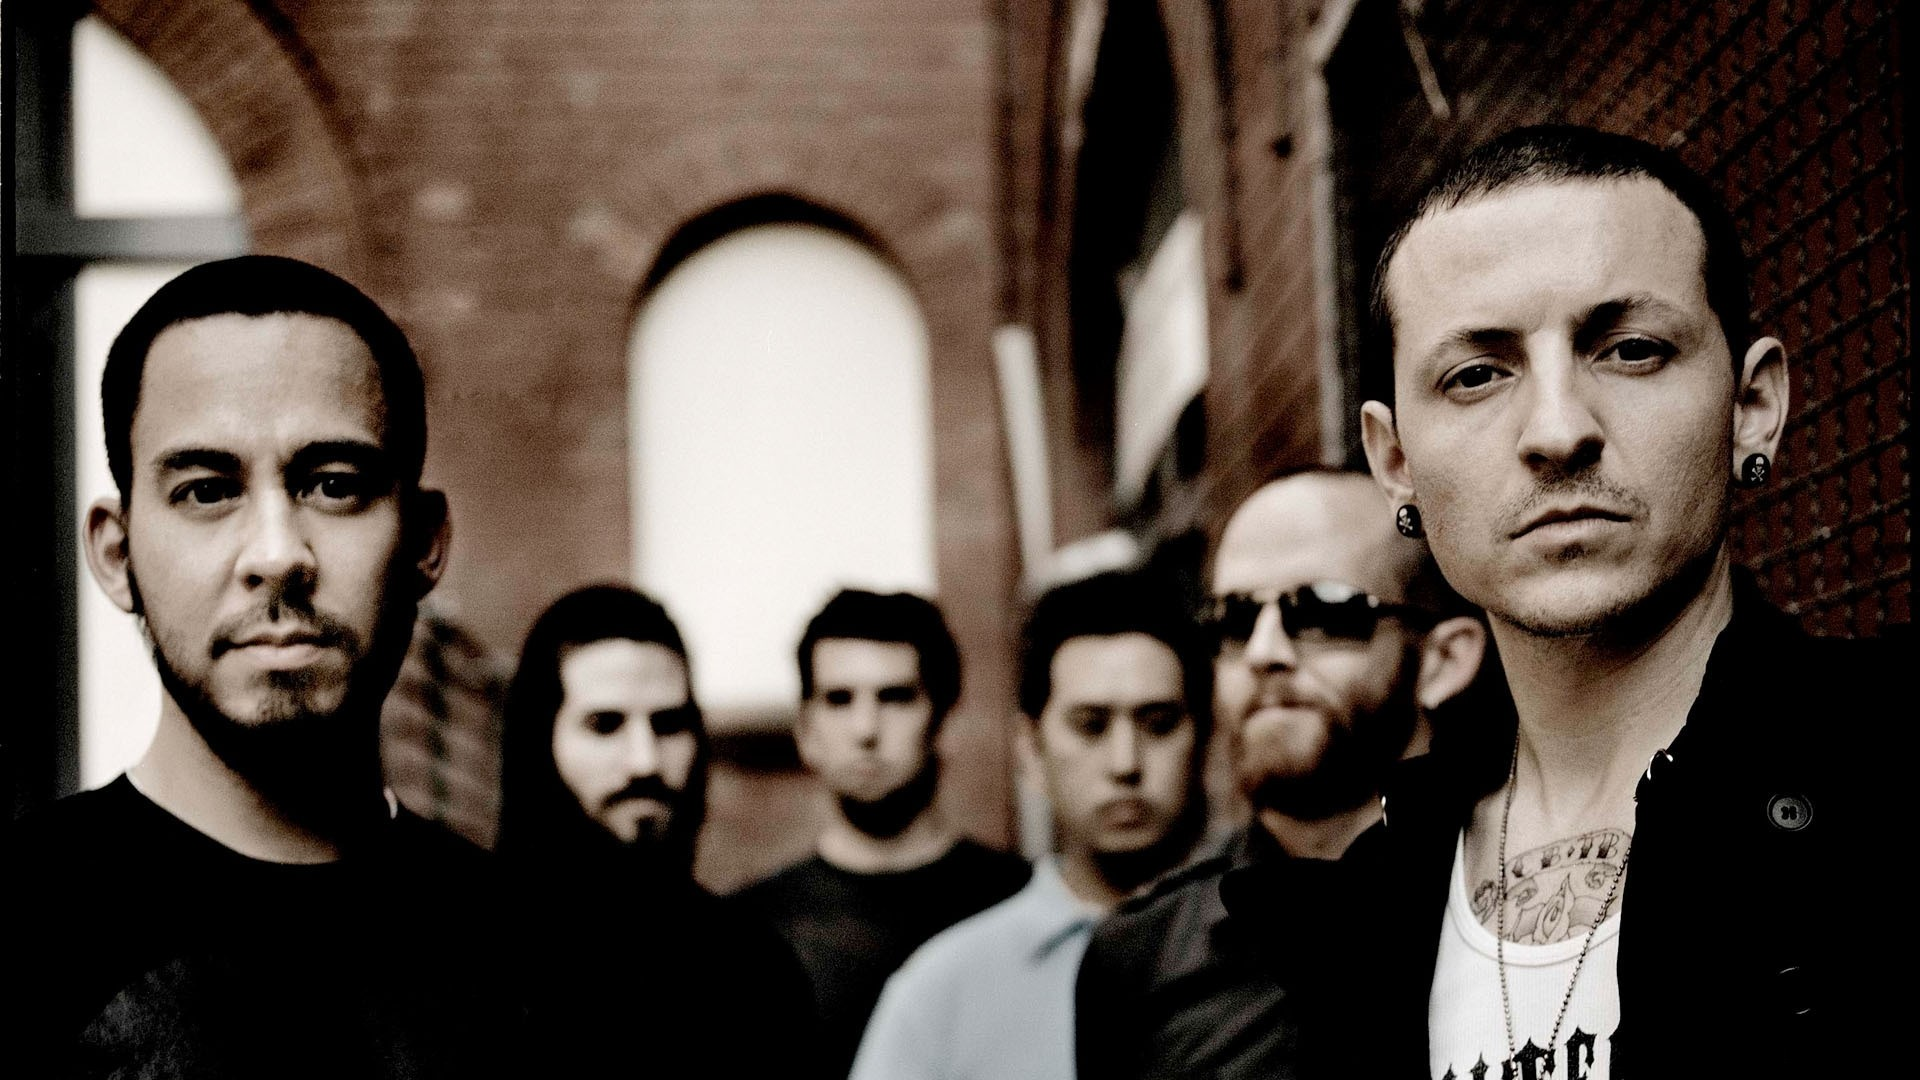 linkin-park-wallpaper.jpg